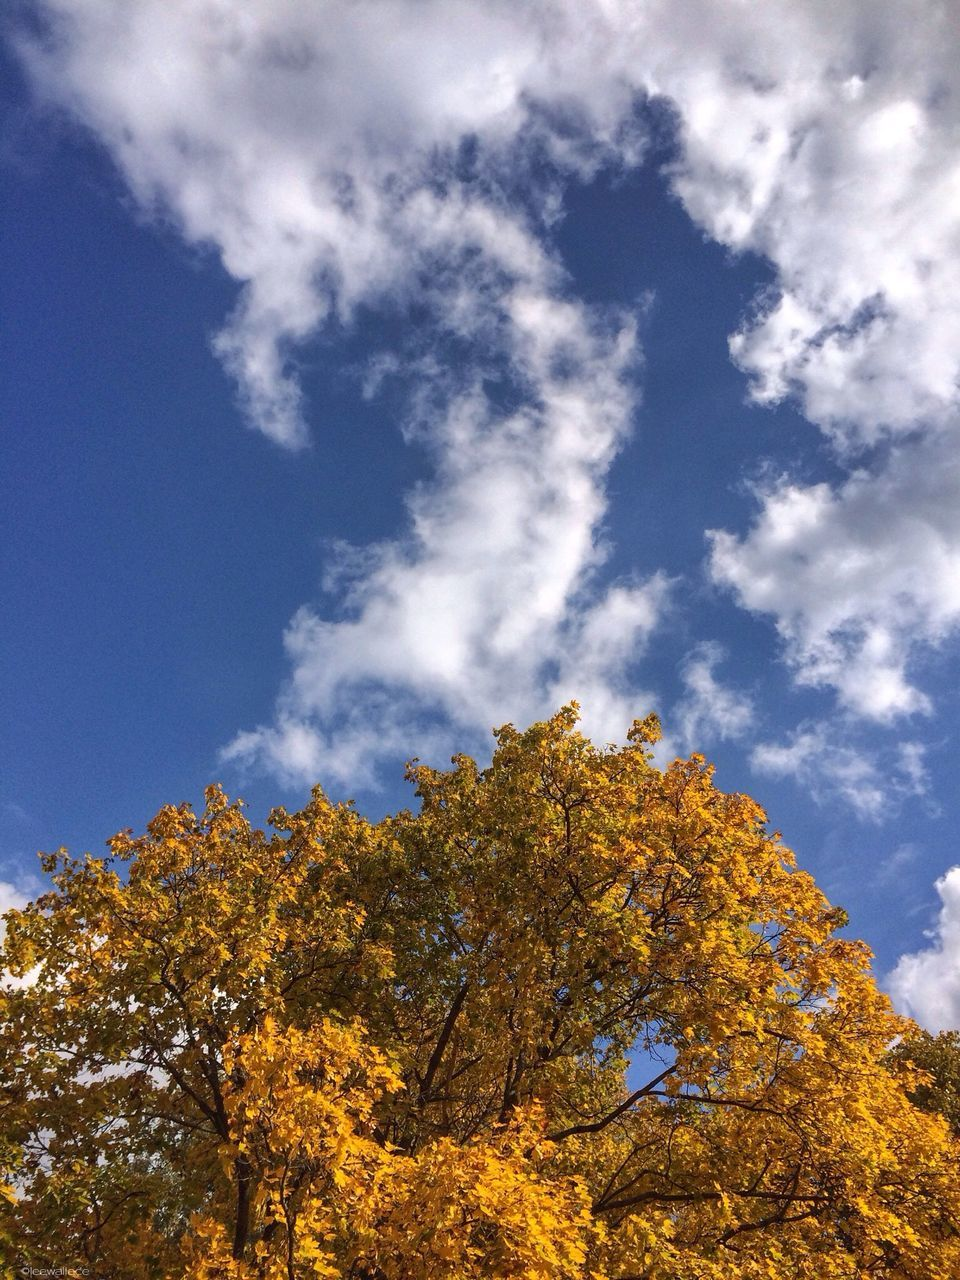 low angle view, autumn, tree, sky, nature, beauty in nature, growth, cloud - sky, day, change, tranquility, outdoors, no people, leaf, blue, scenics, branch